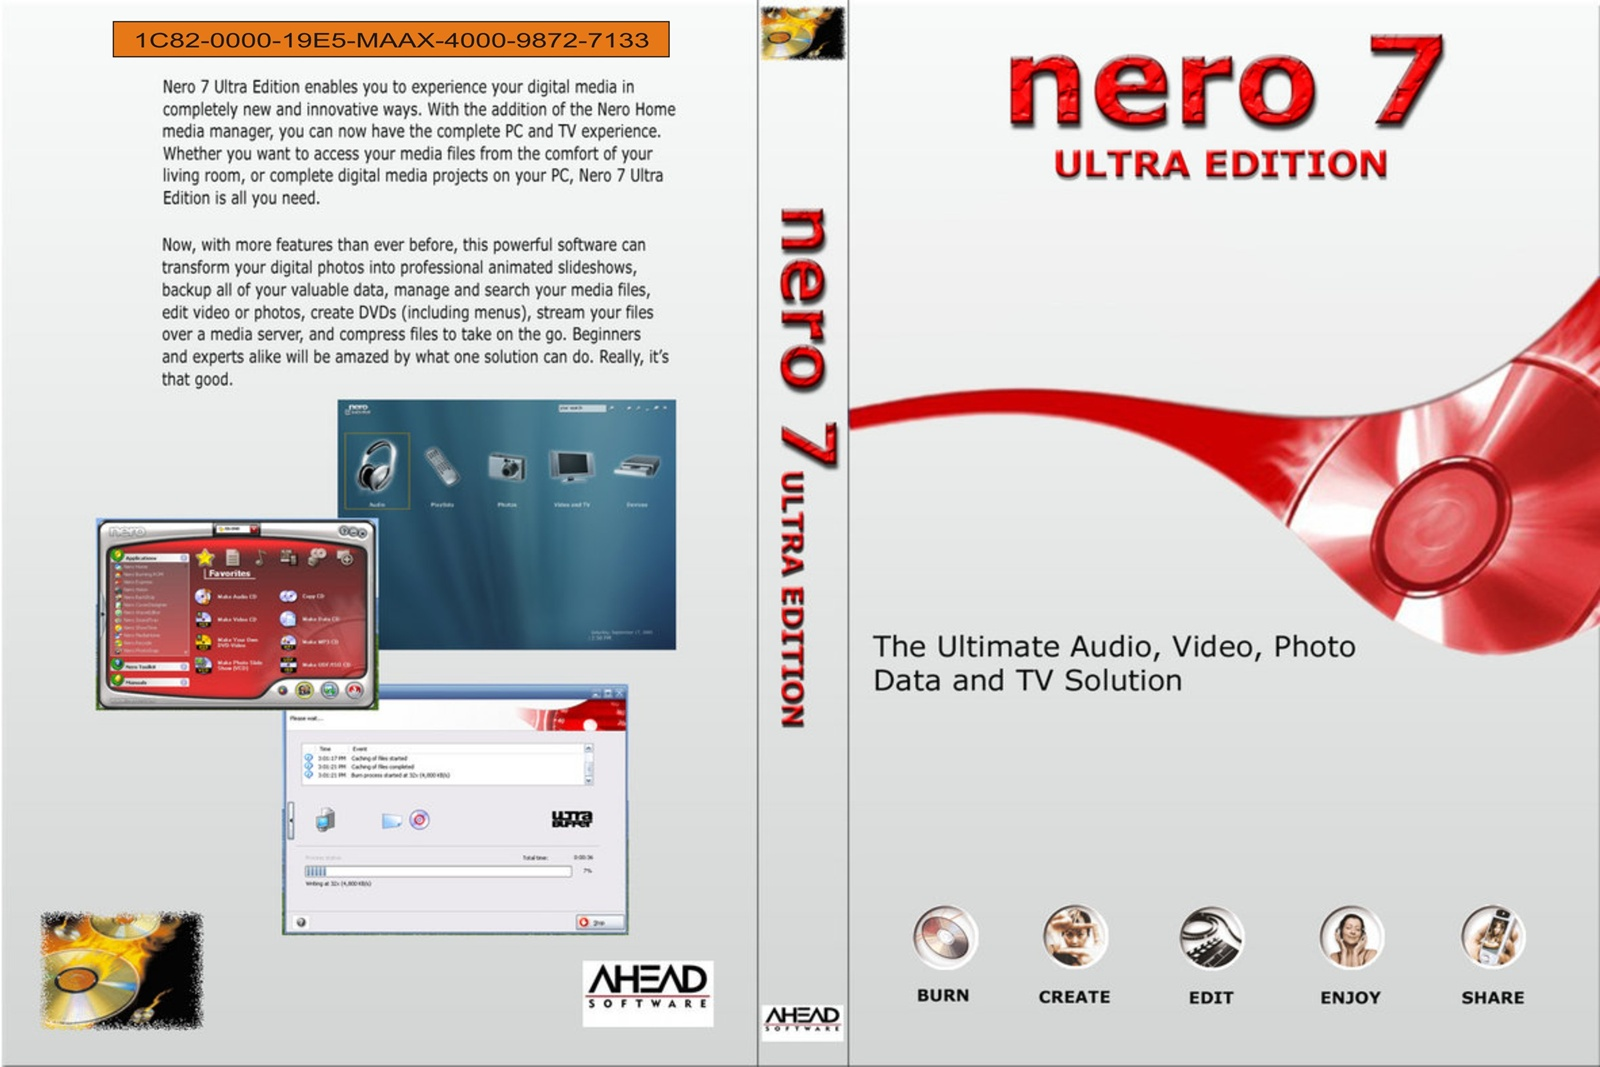 nero 7 ultra edition full version free download